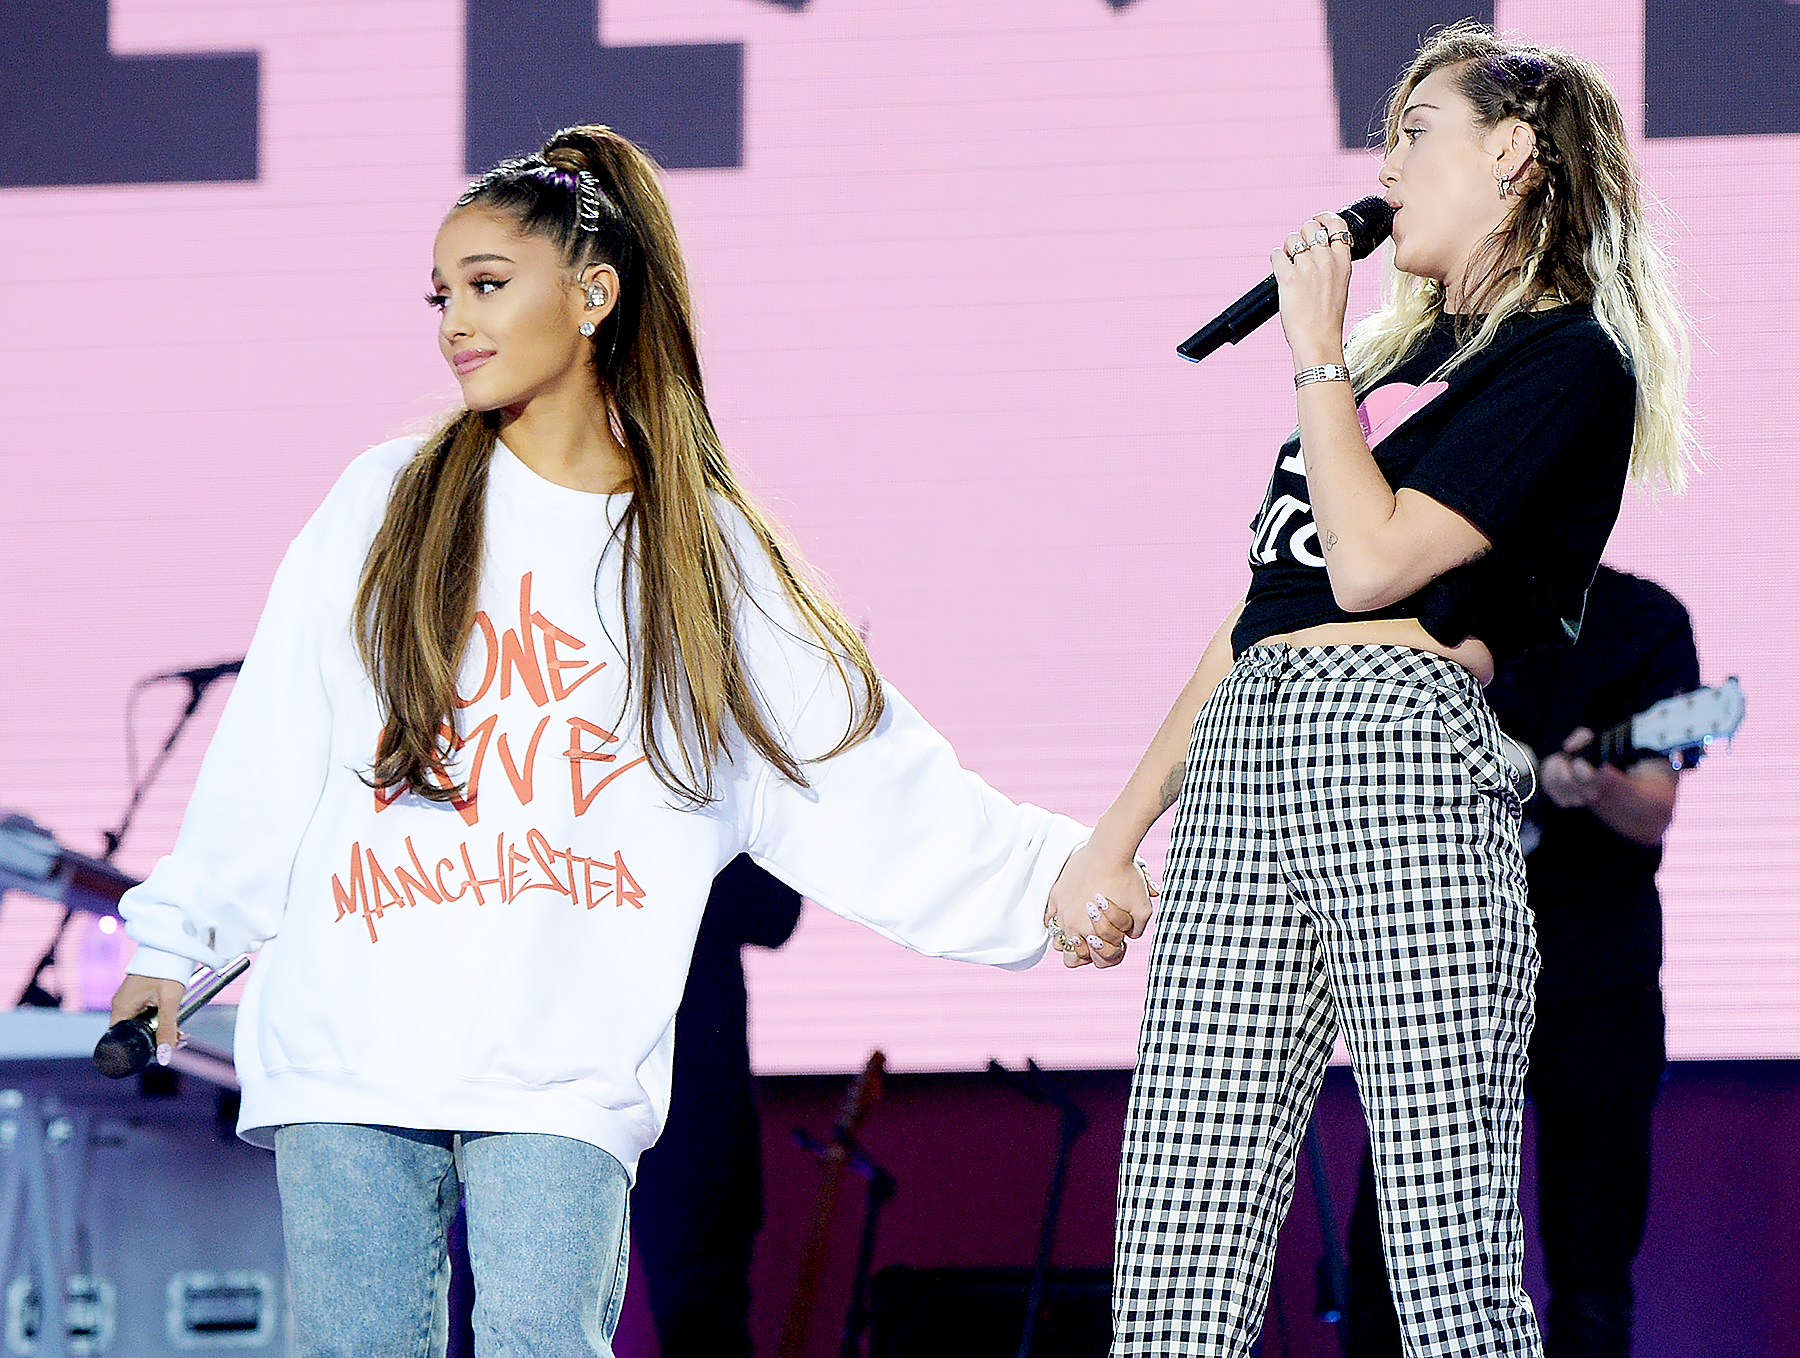 Ariana Grande and Miley Cyrus perform on stage during the One Love Manchester Benefit Concert at Old Trafford Cricket Ground on June 4, 2017 in Manchester, England.